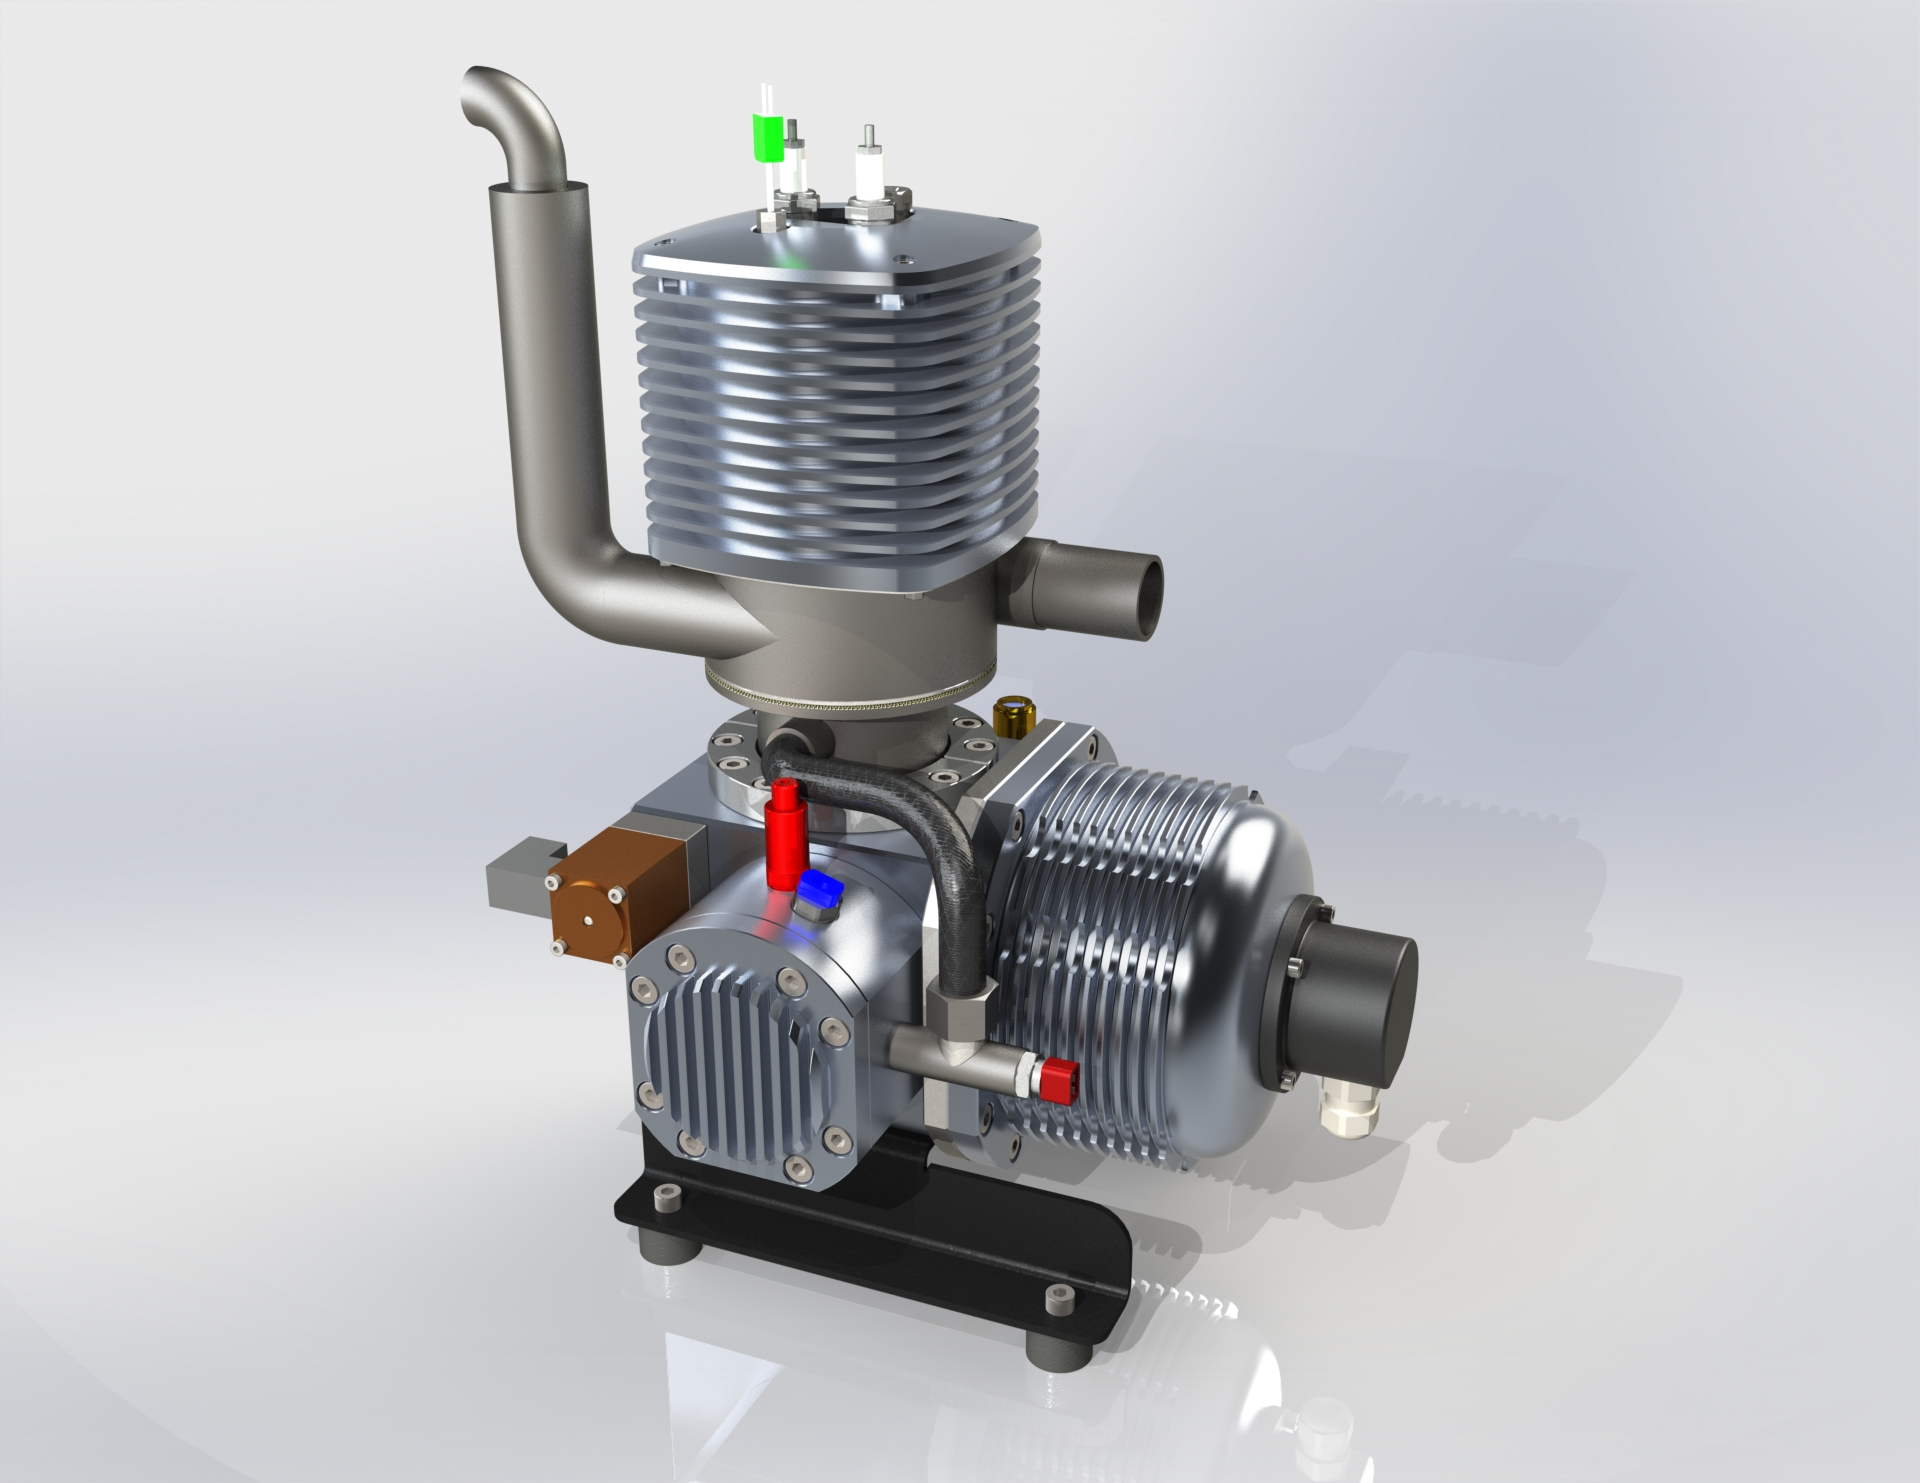 Stirling engines used as auxiliary power units